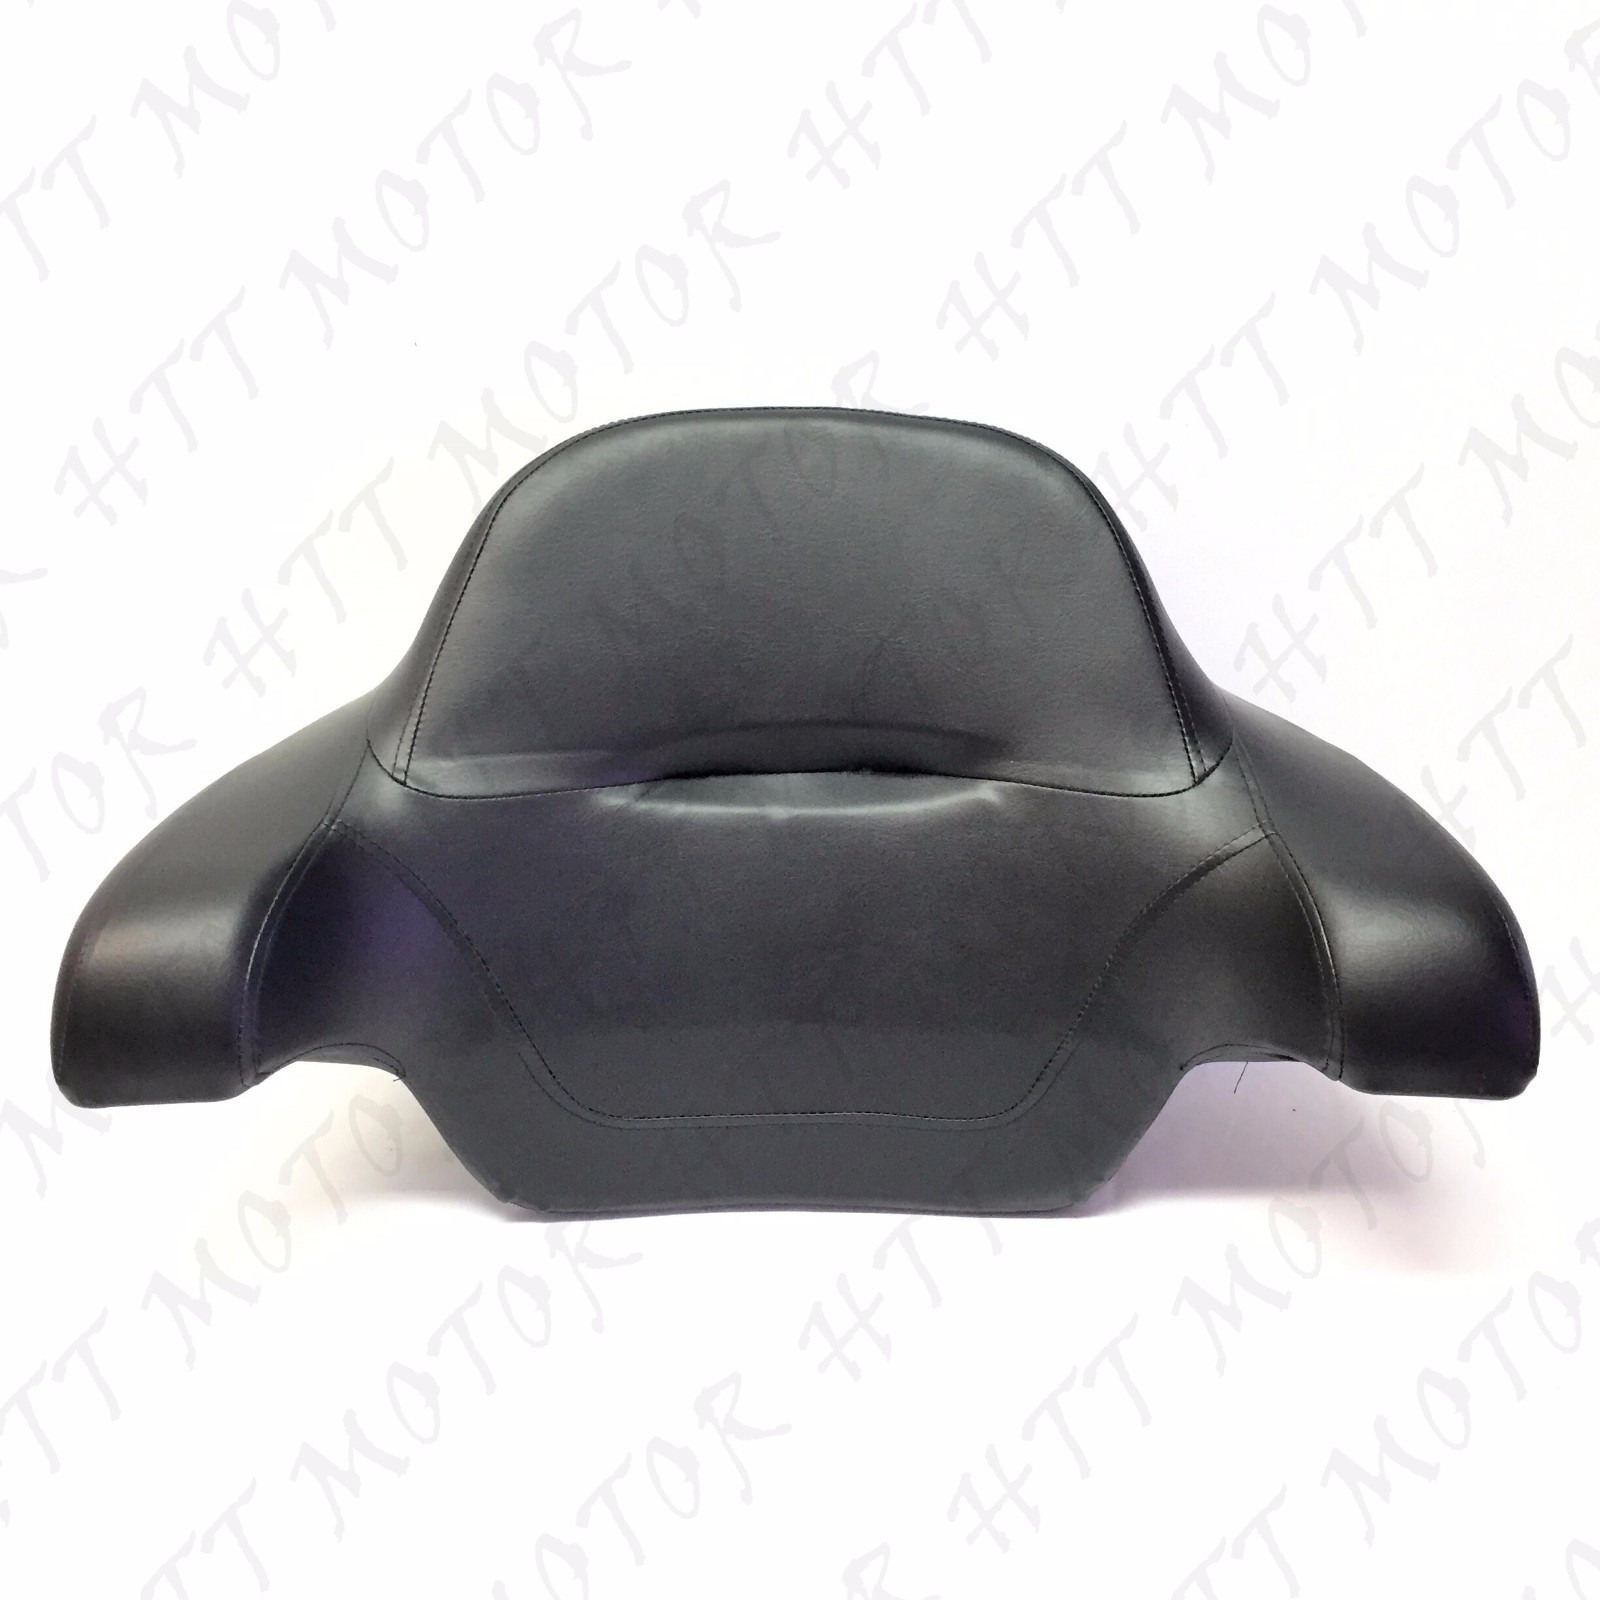 HTT Group Motorcycle Black Raindrop Side Mirrors For 1984 and up Harley Davidson Touring Street Glide Road Glide Special Electra Glide Ultra Classic Ultra Limited